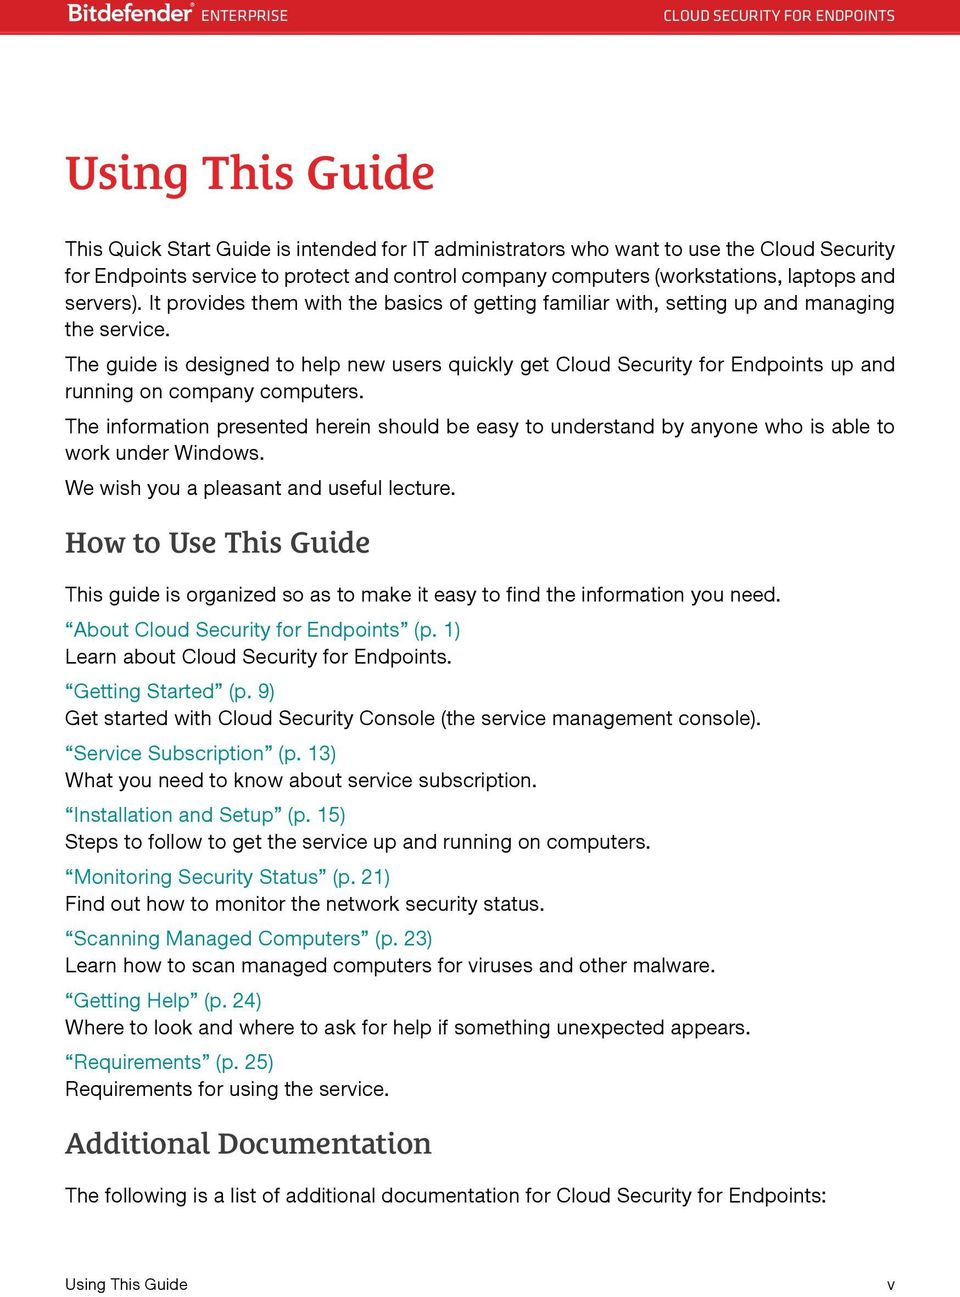 The guide is designed to help new users quickly get Cloud Security for Endpoints up and running on company computers.